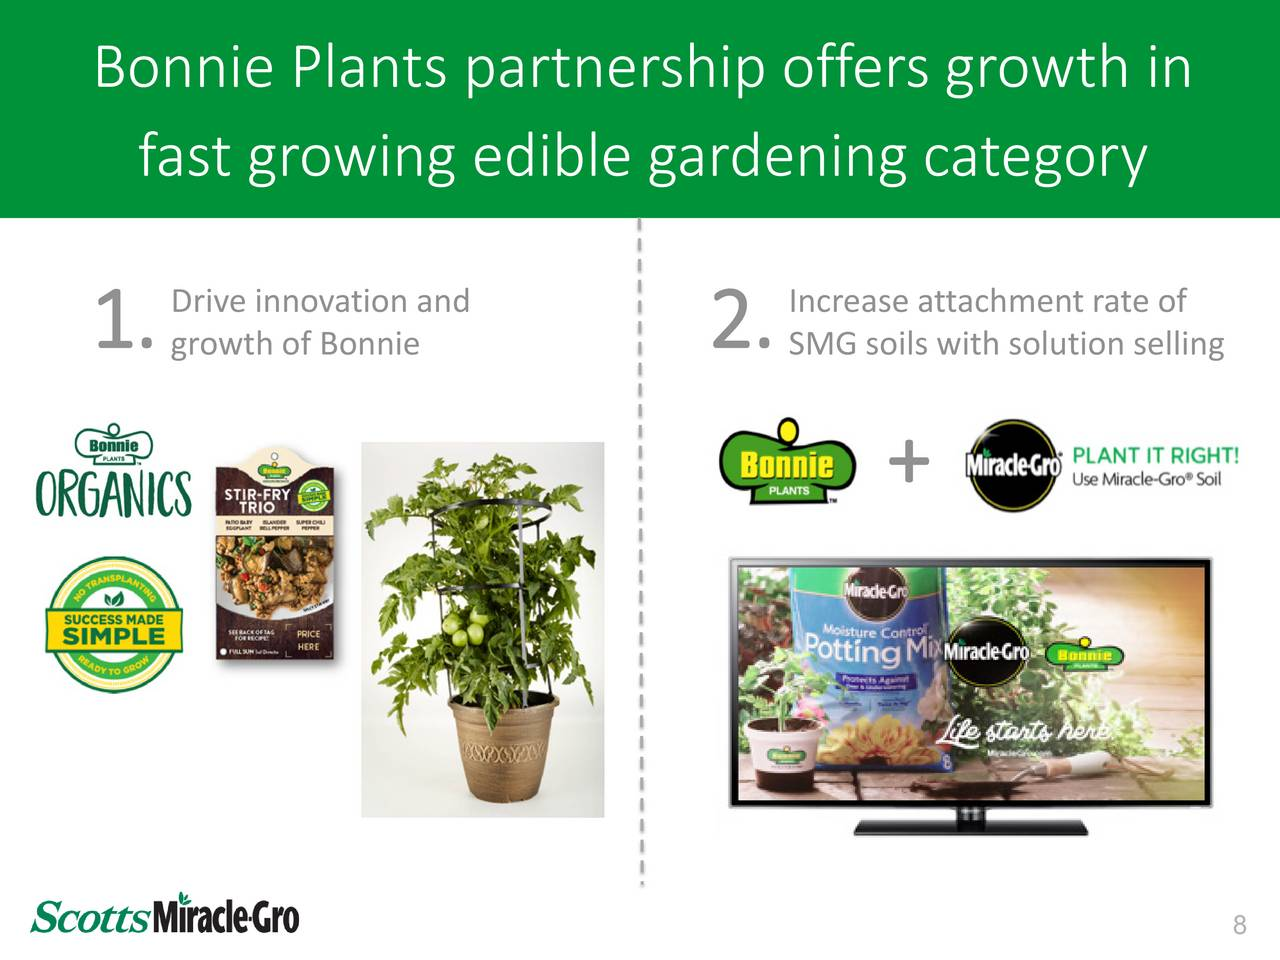 scotts miracle gro case solution